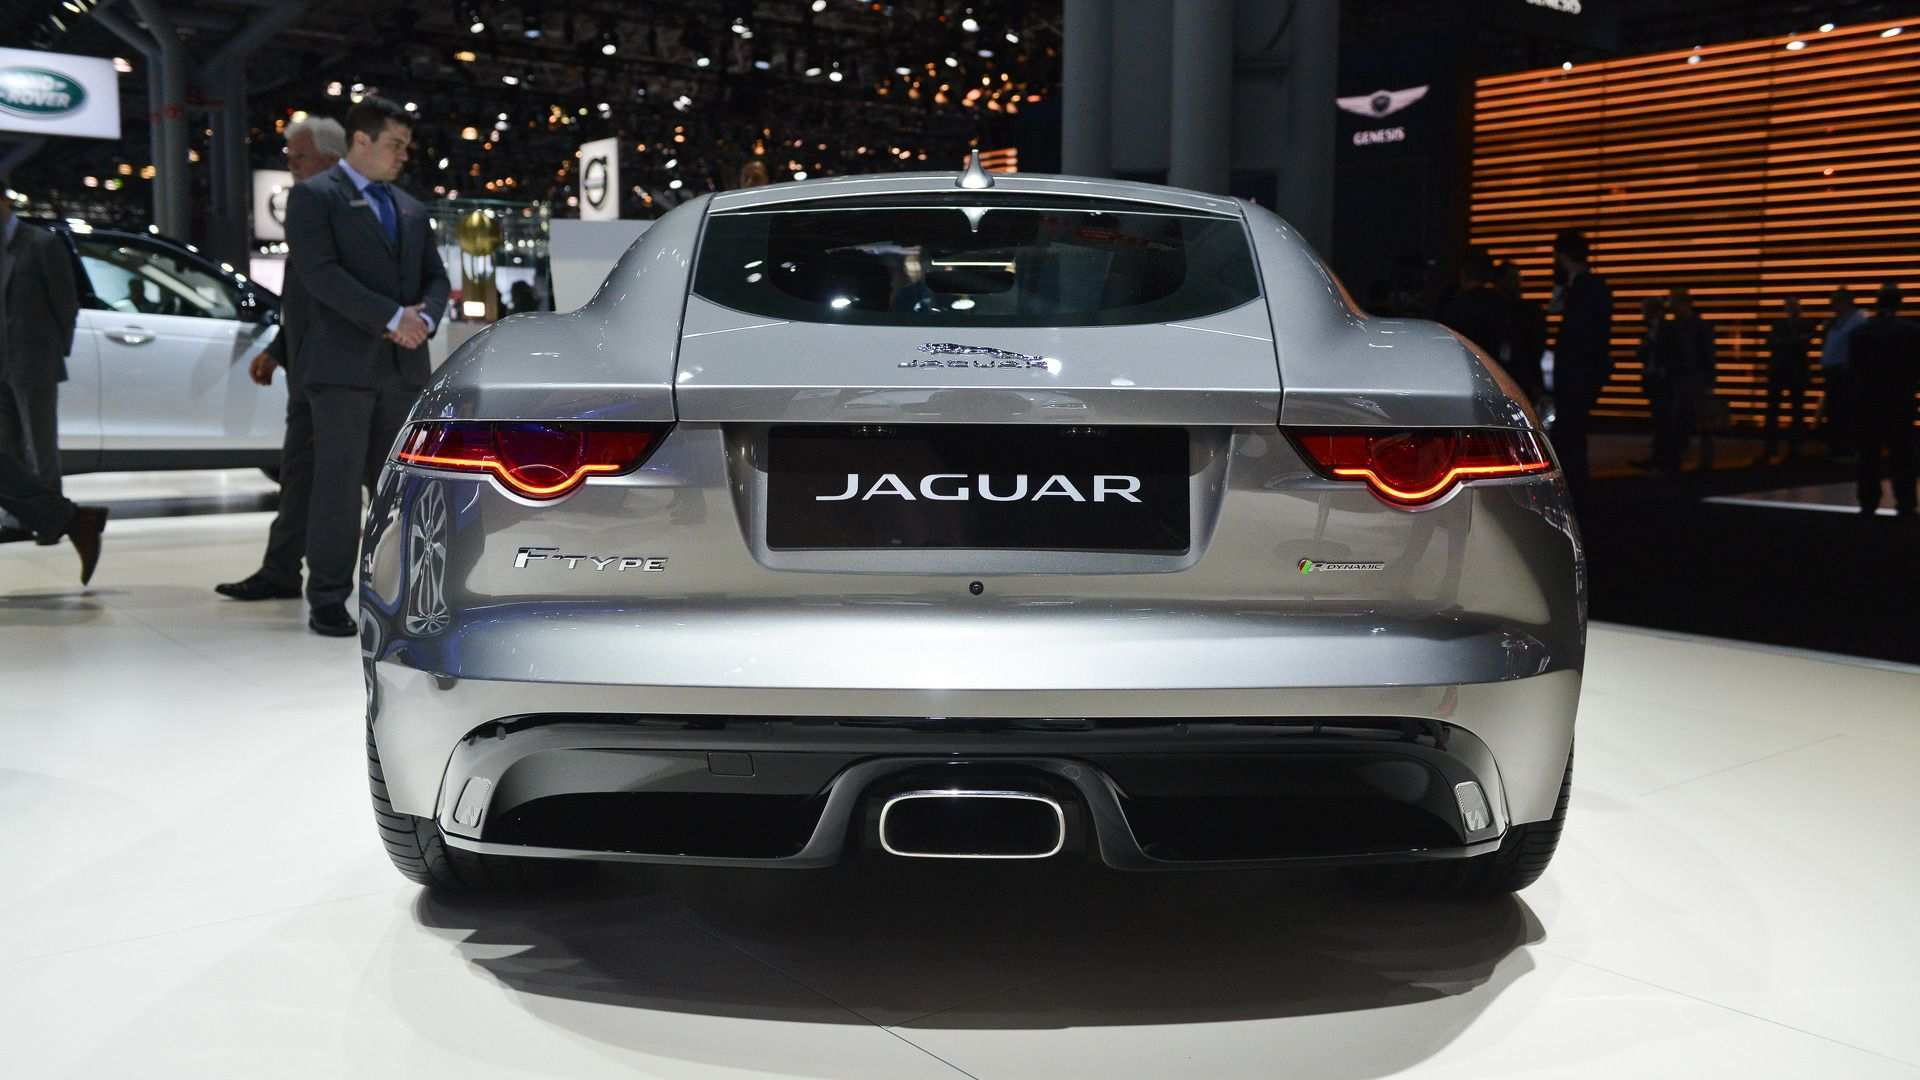 46 Best Review Jaguar F Type 2020 New Concept Specs with Jaguar F Type 2020 New Concept